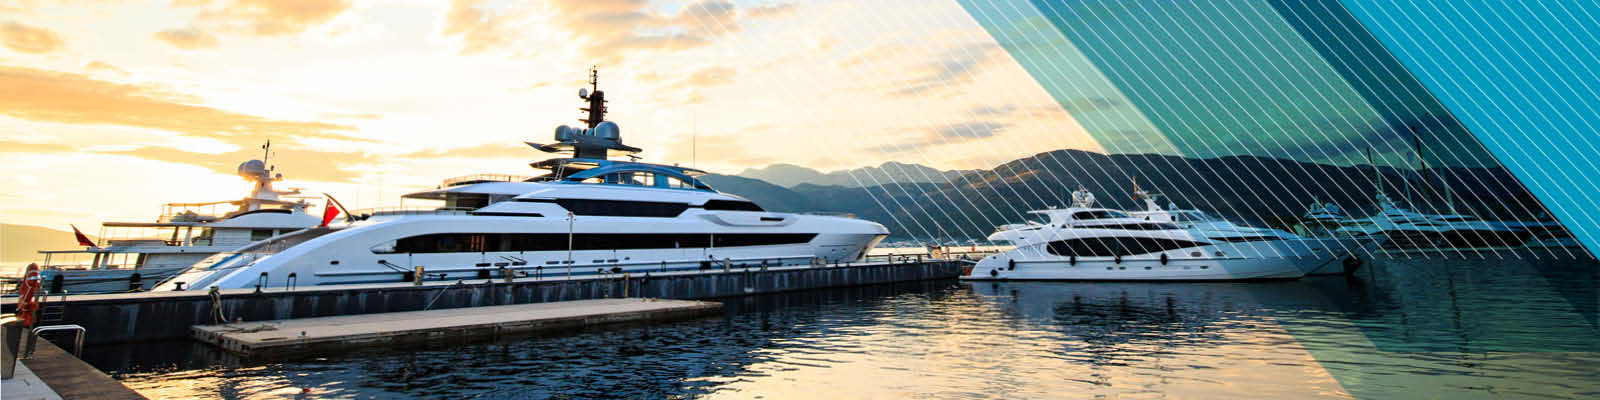 Owning a Superyacht in the Middle East